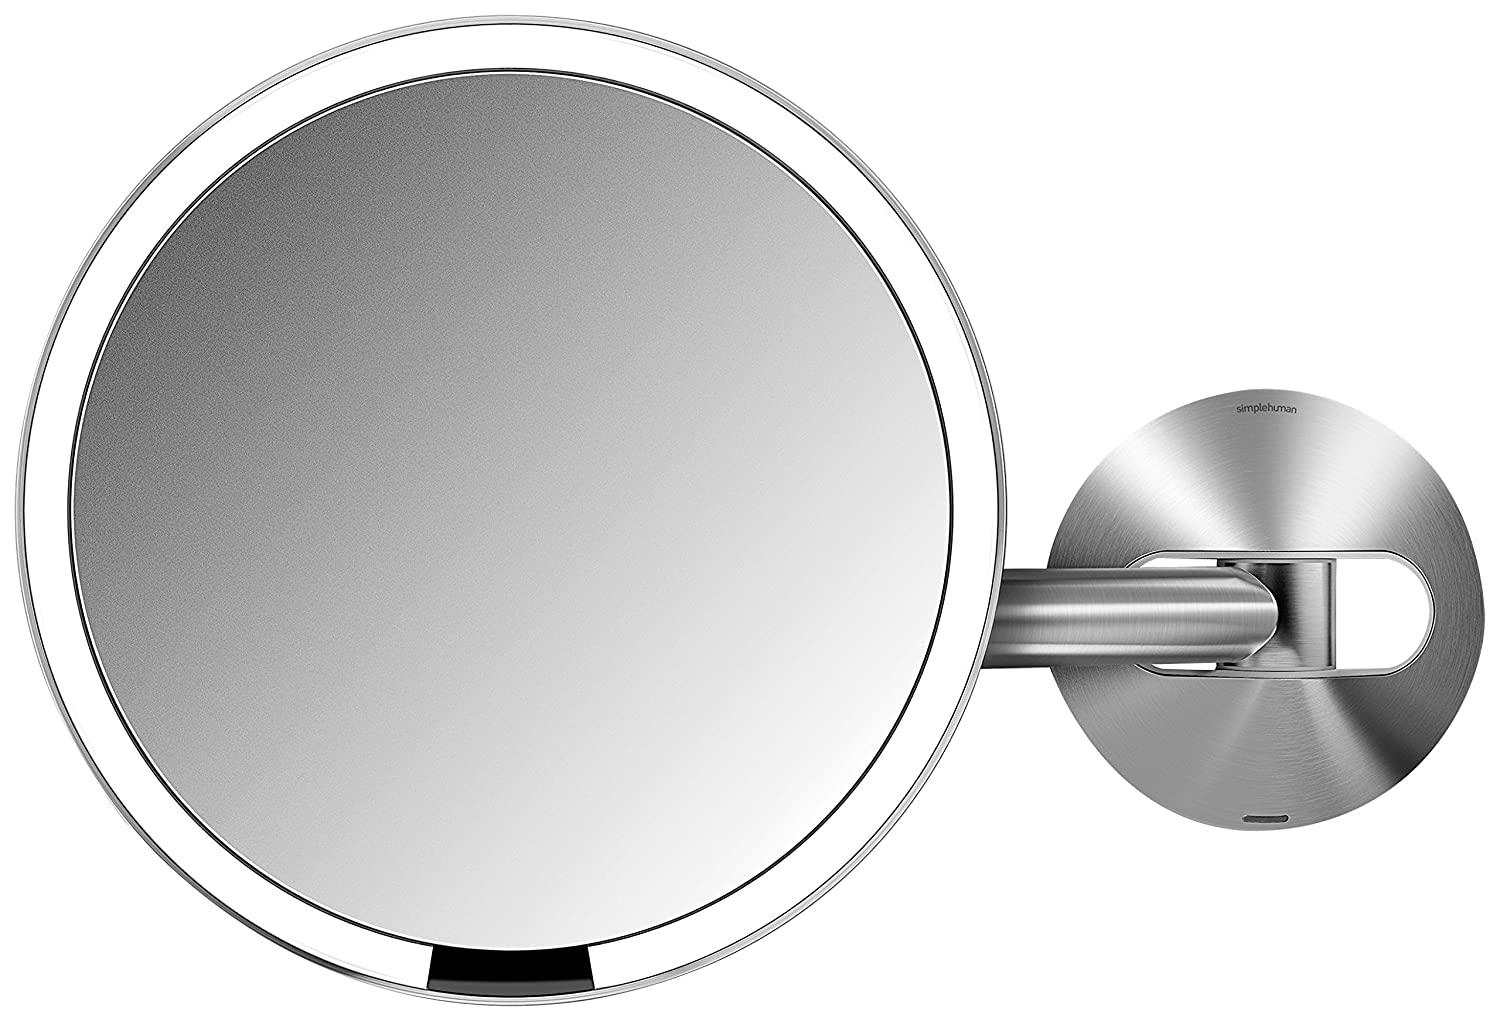 "simplehuman Sensor Lighted Makeup Vanity Mirror 8"" Round Wall Mount, 5x Magnification, Stainless Steel, Rechargeable And Cordless"